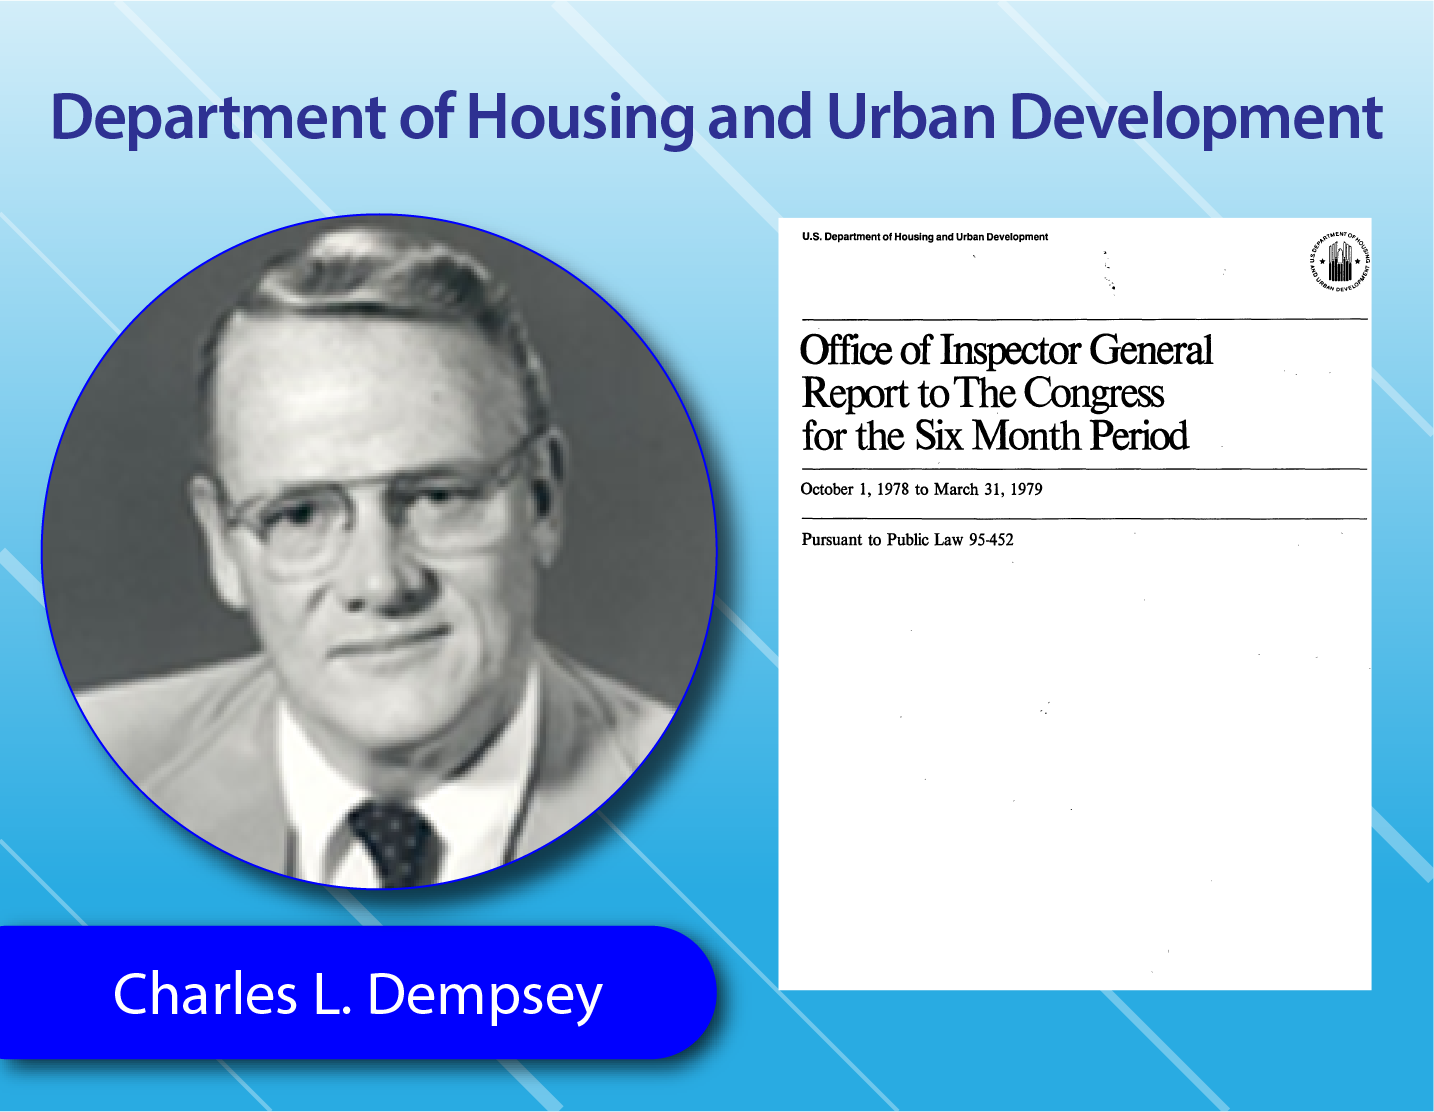 Department of Housing and Urban Development - Charles L. Dempsey